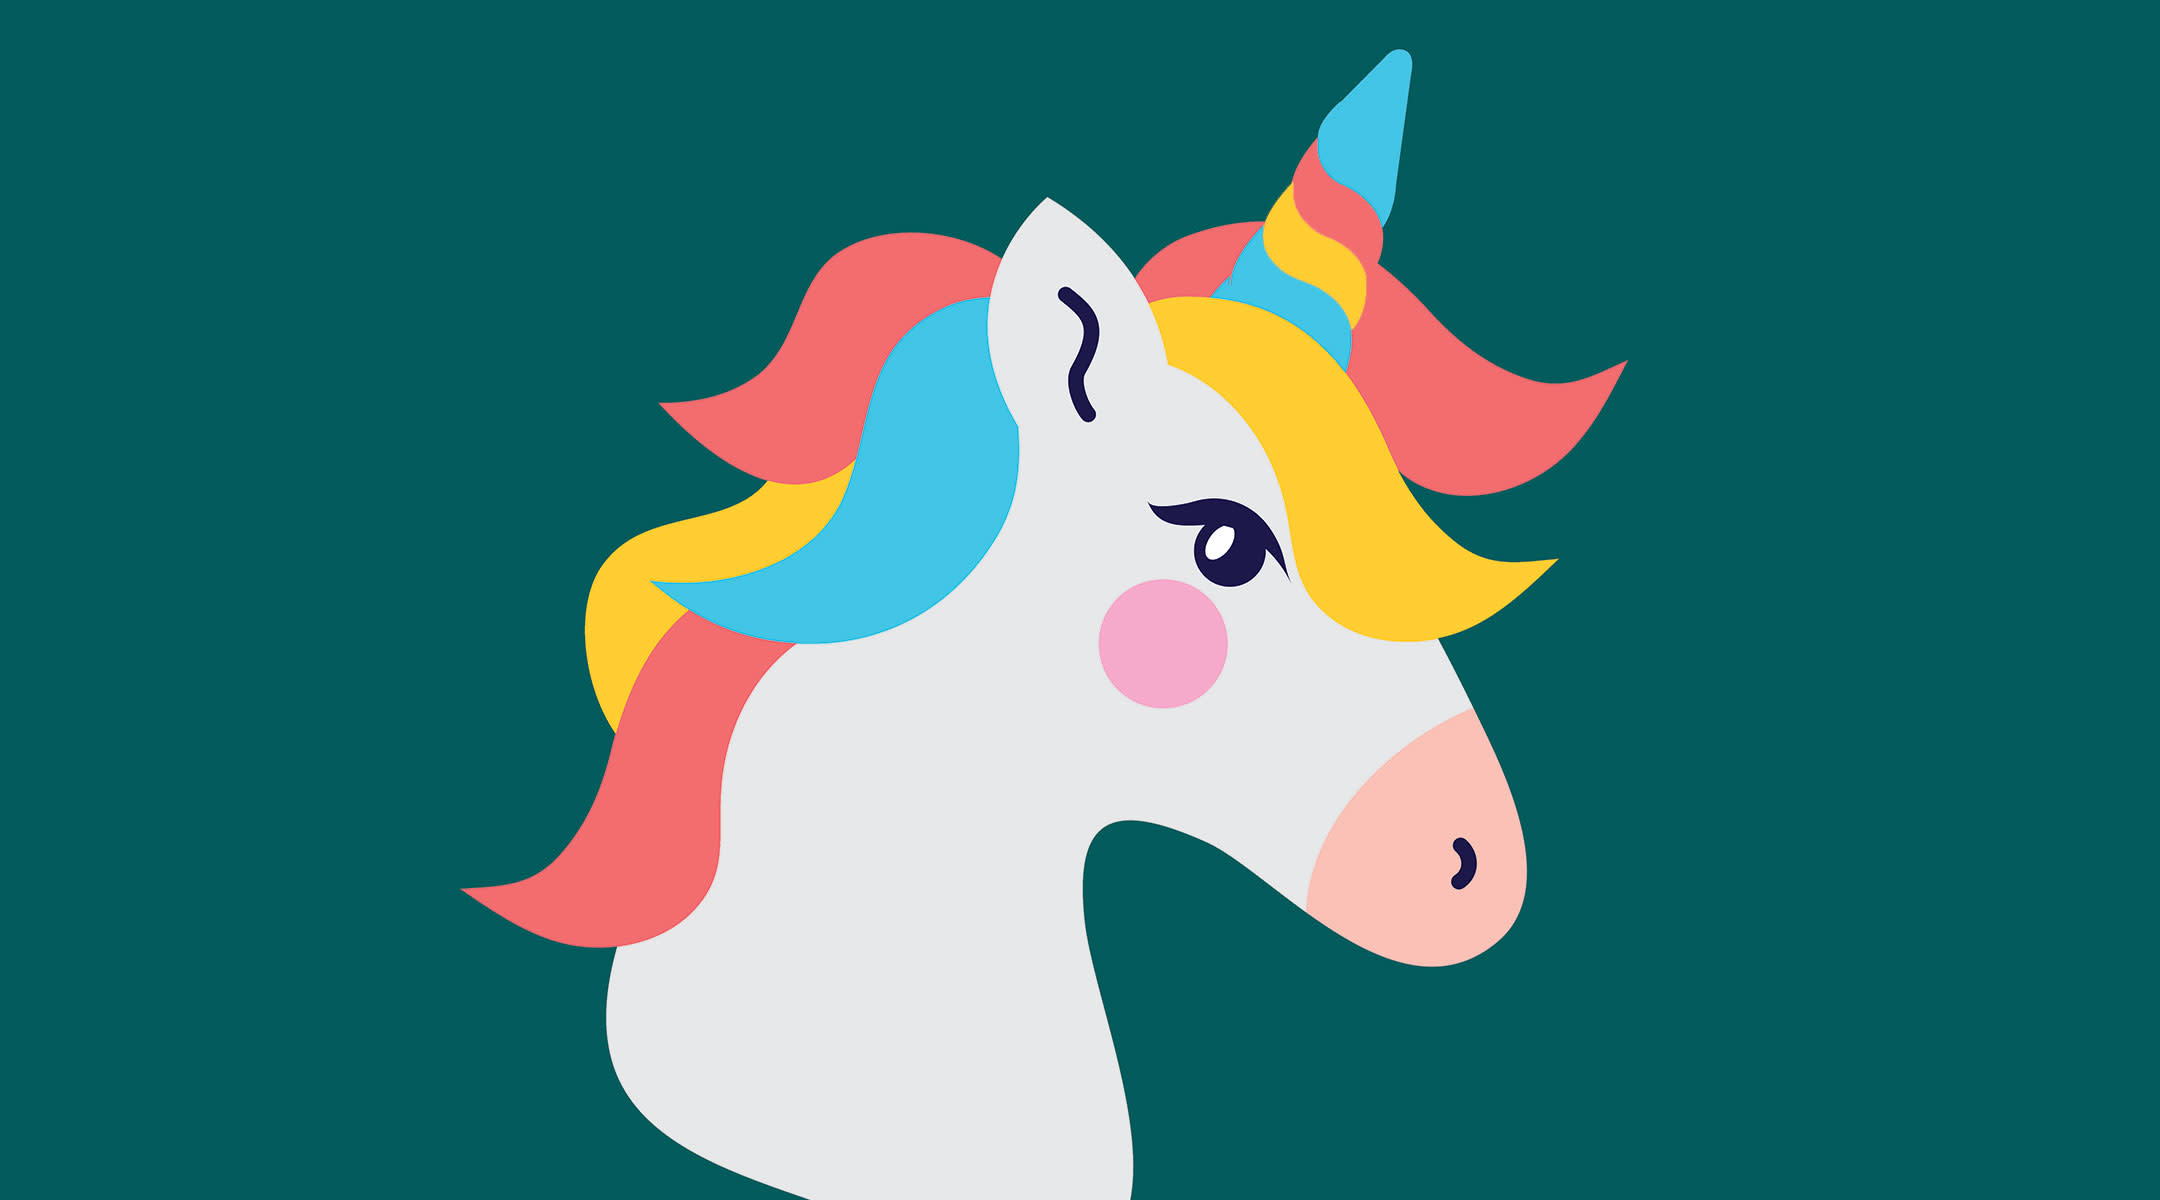 colorful unicorn which represents the myths